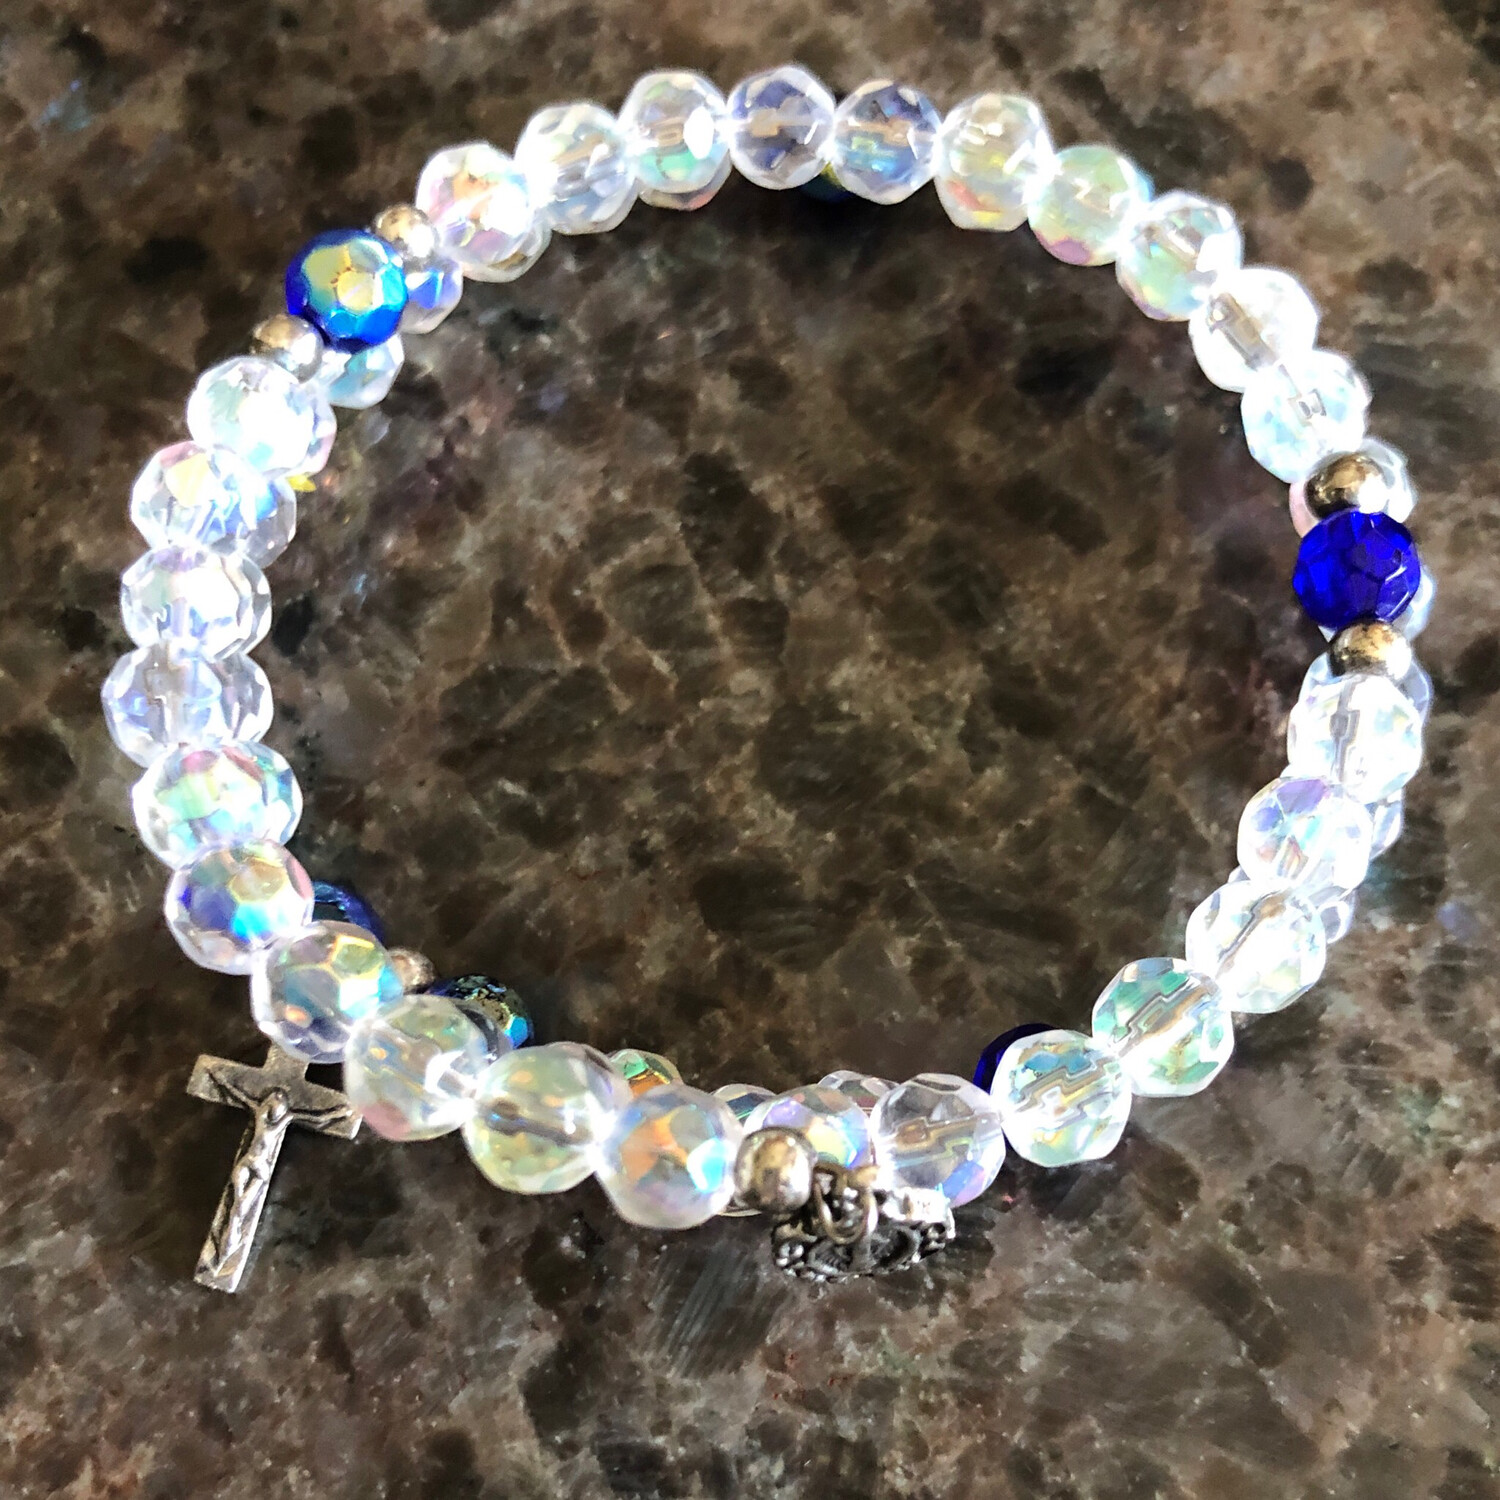 Iridescent Clear Bead Spiral Rosary Bracelet with Blue 710CR